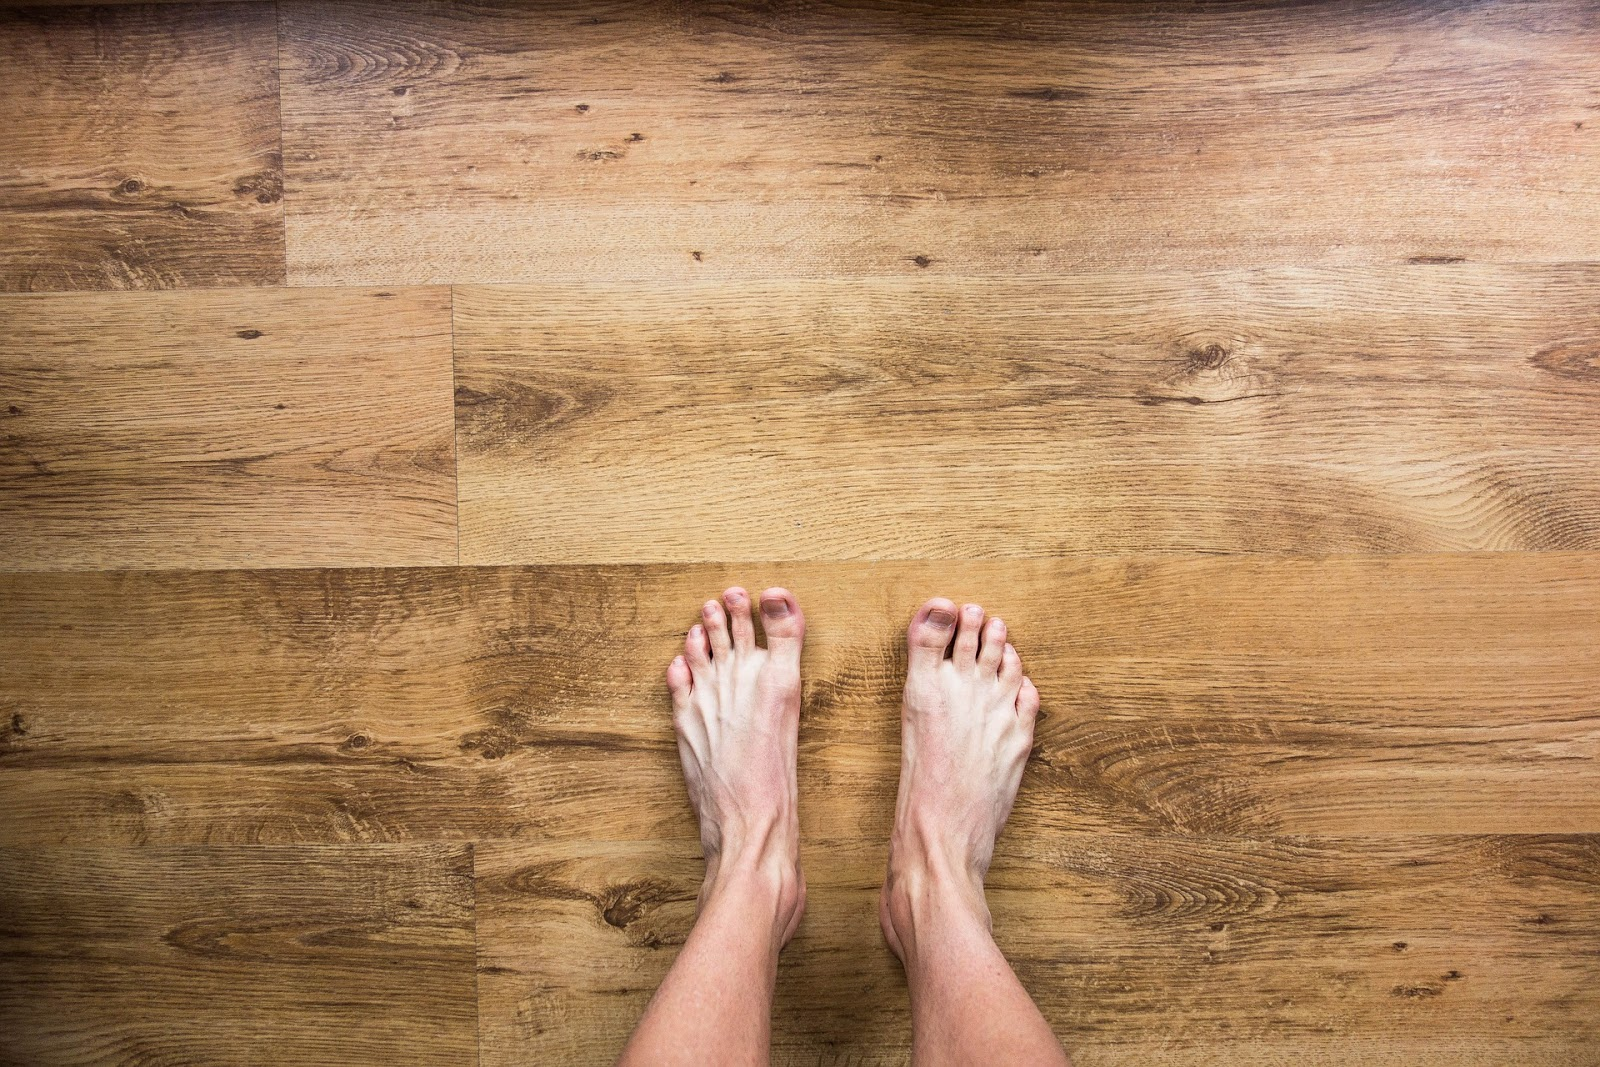 A pair of bare feet on a light-coloured wooden floor.